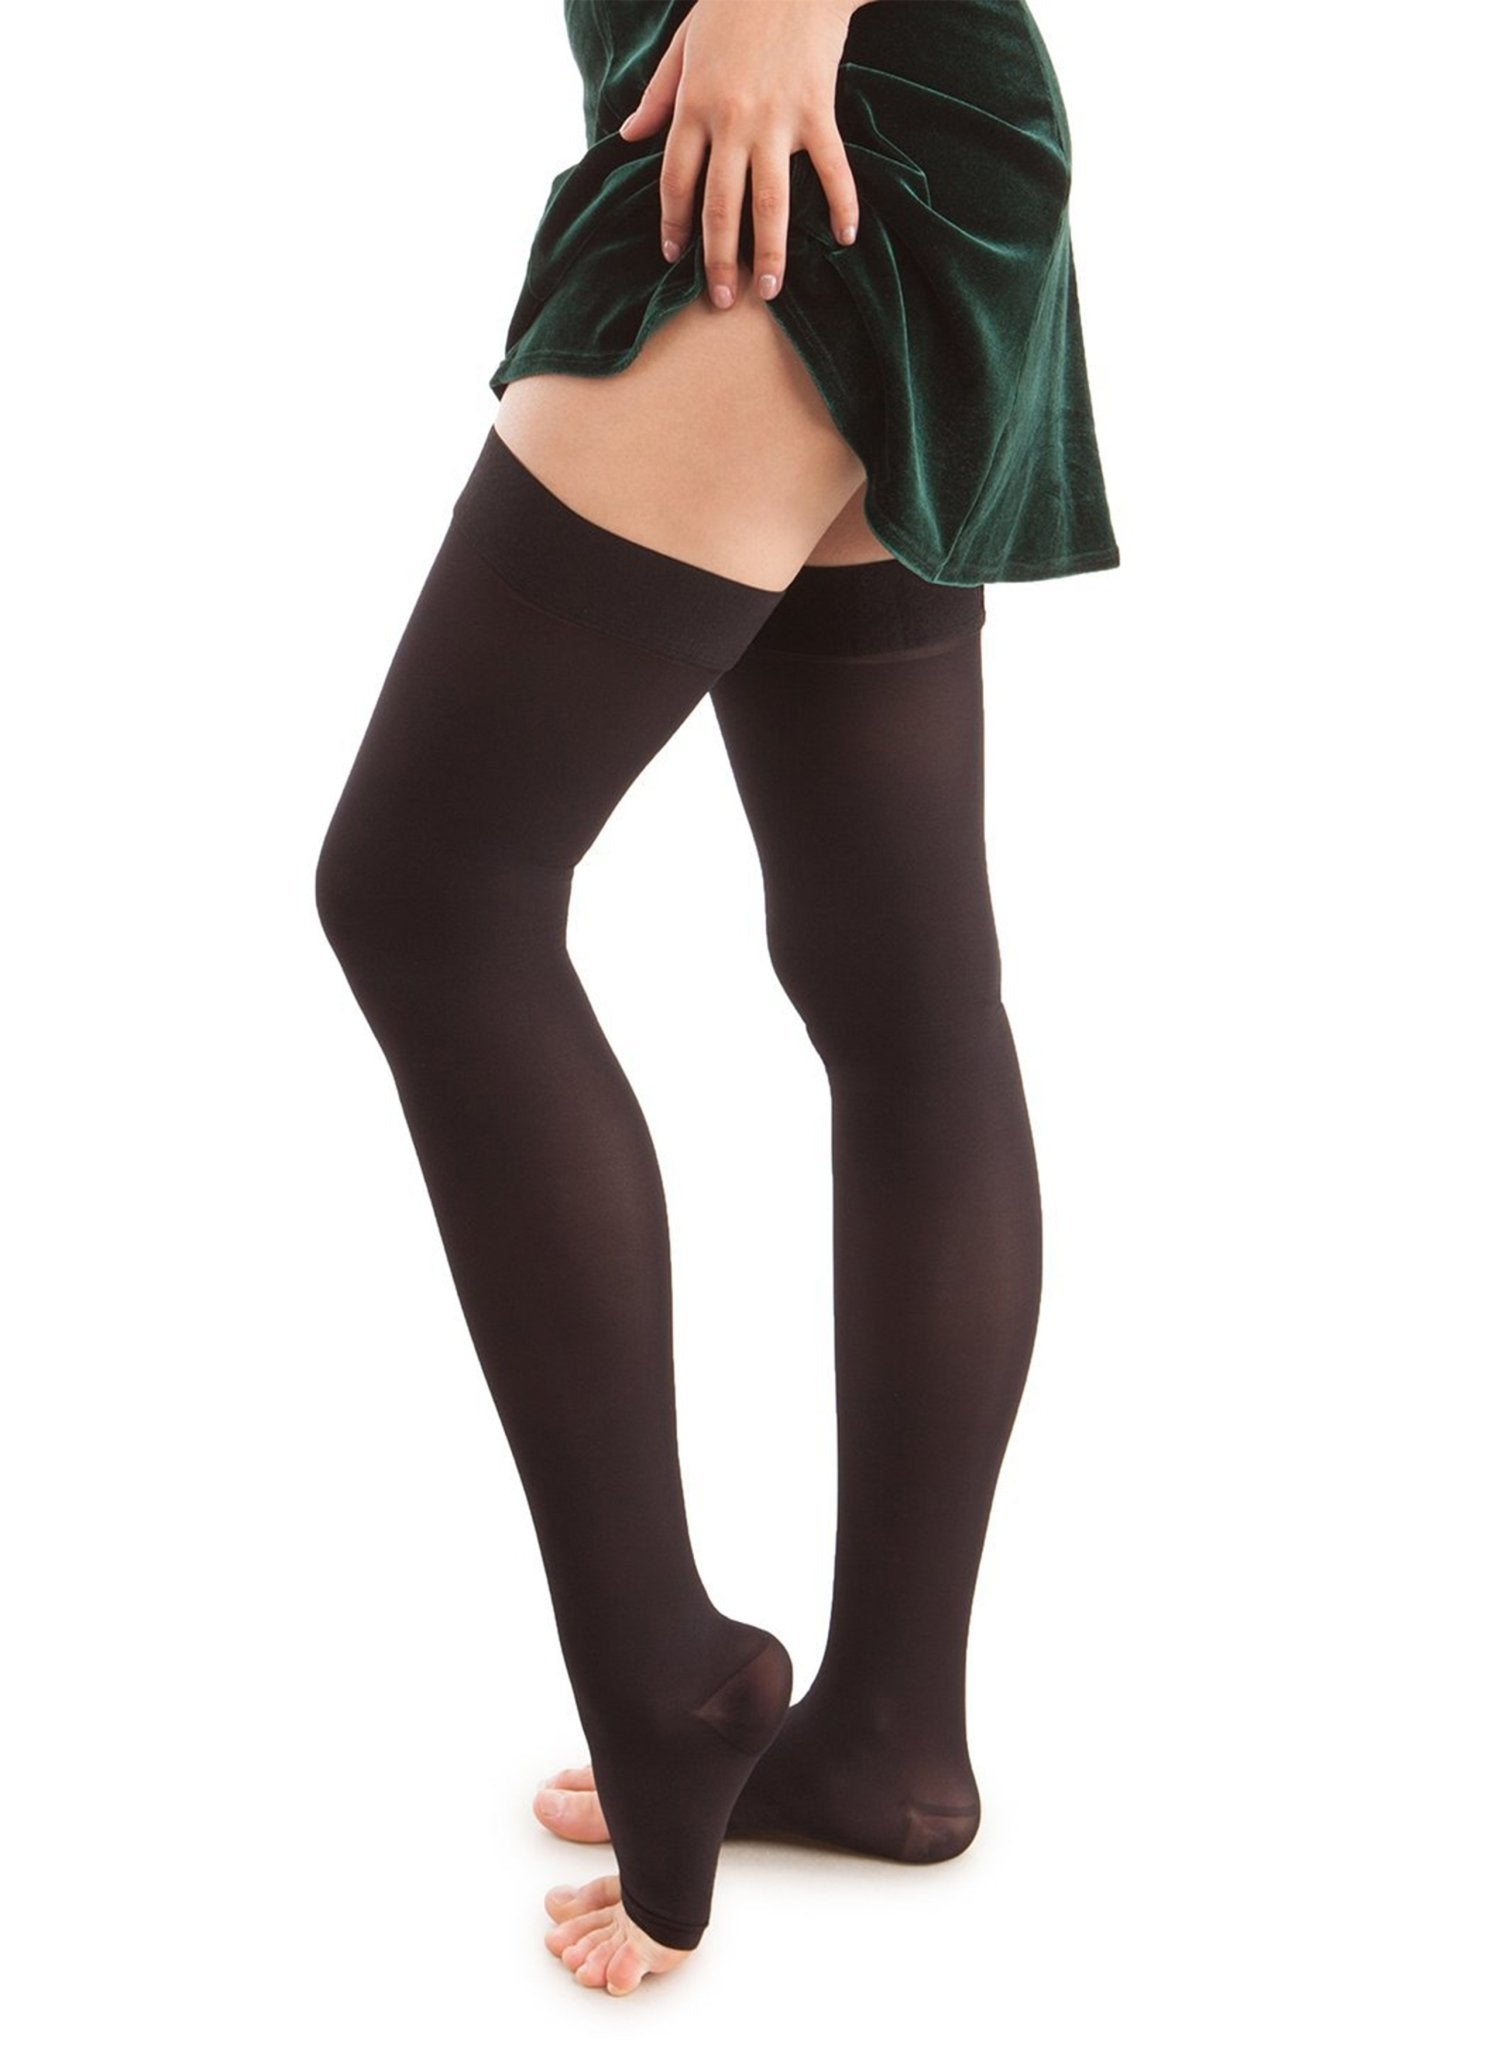 Microfiber Open Toe Thigh Highs - Strong Compression - Black - Mums and Bumps